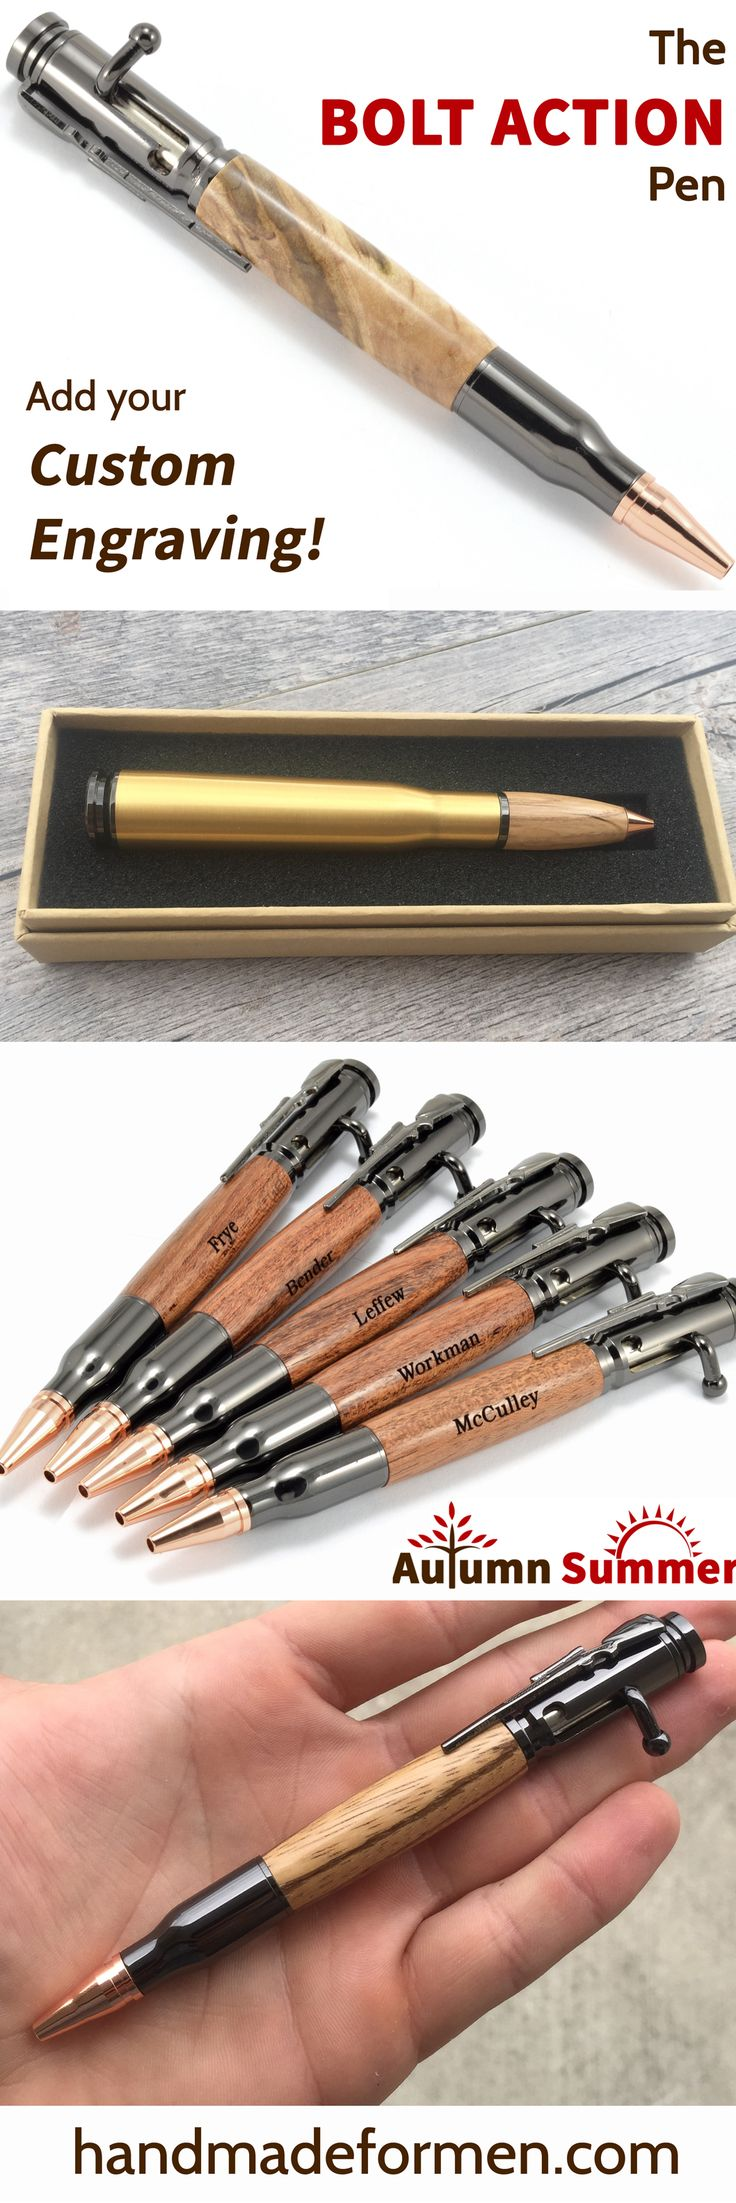 Great Gun Gifts for Him! The Gun Lover is sure to love these bolt action pens! Custom engraved pens! www.handmadeformen.com